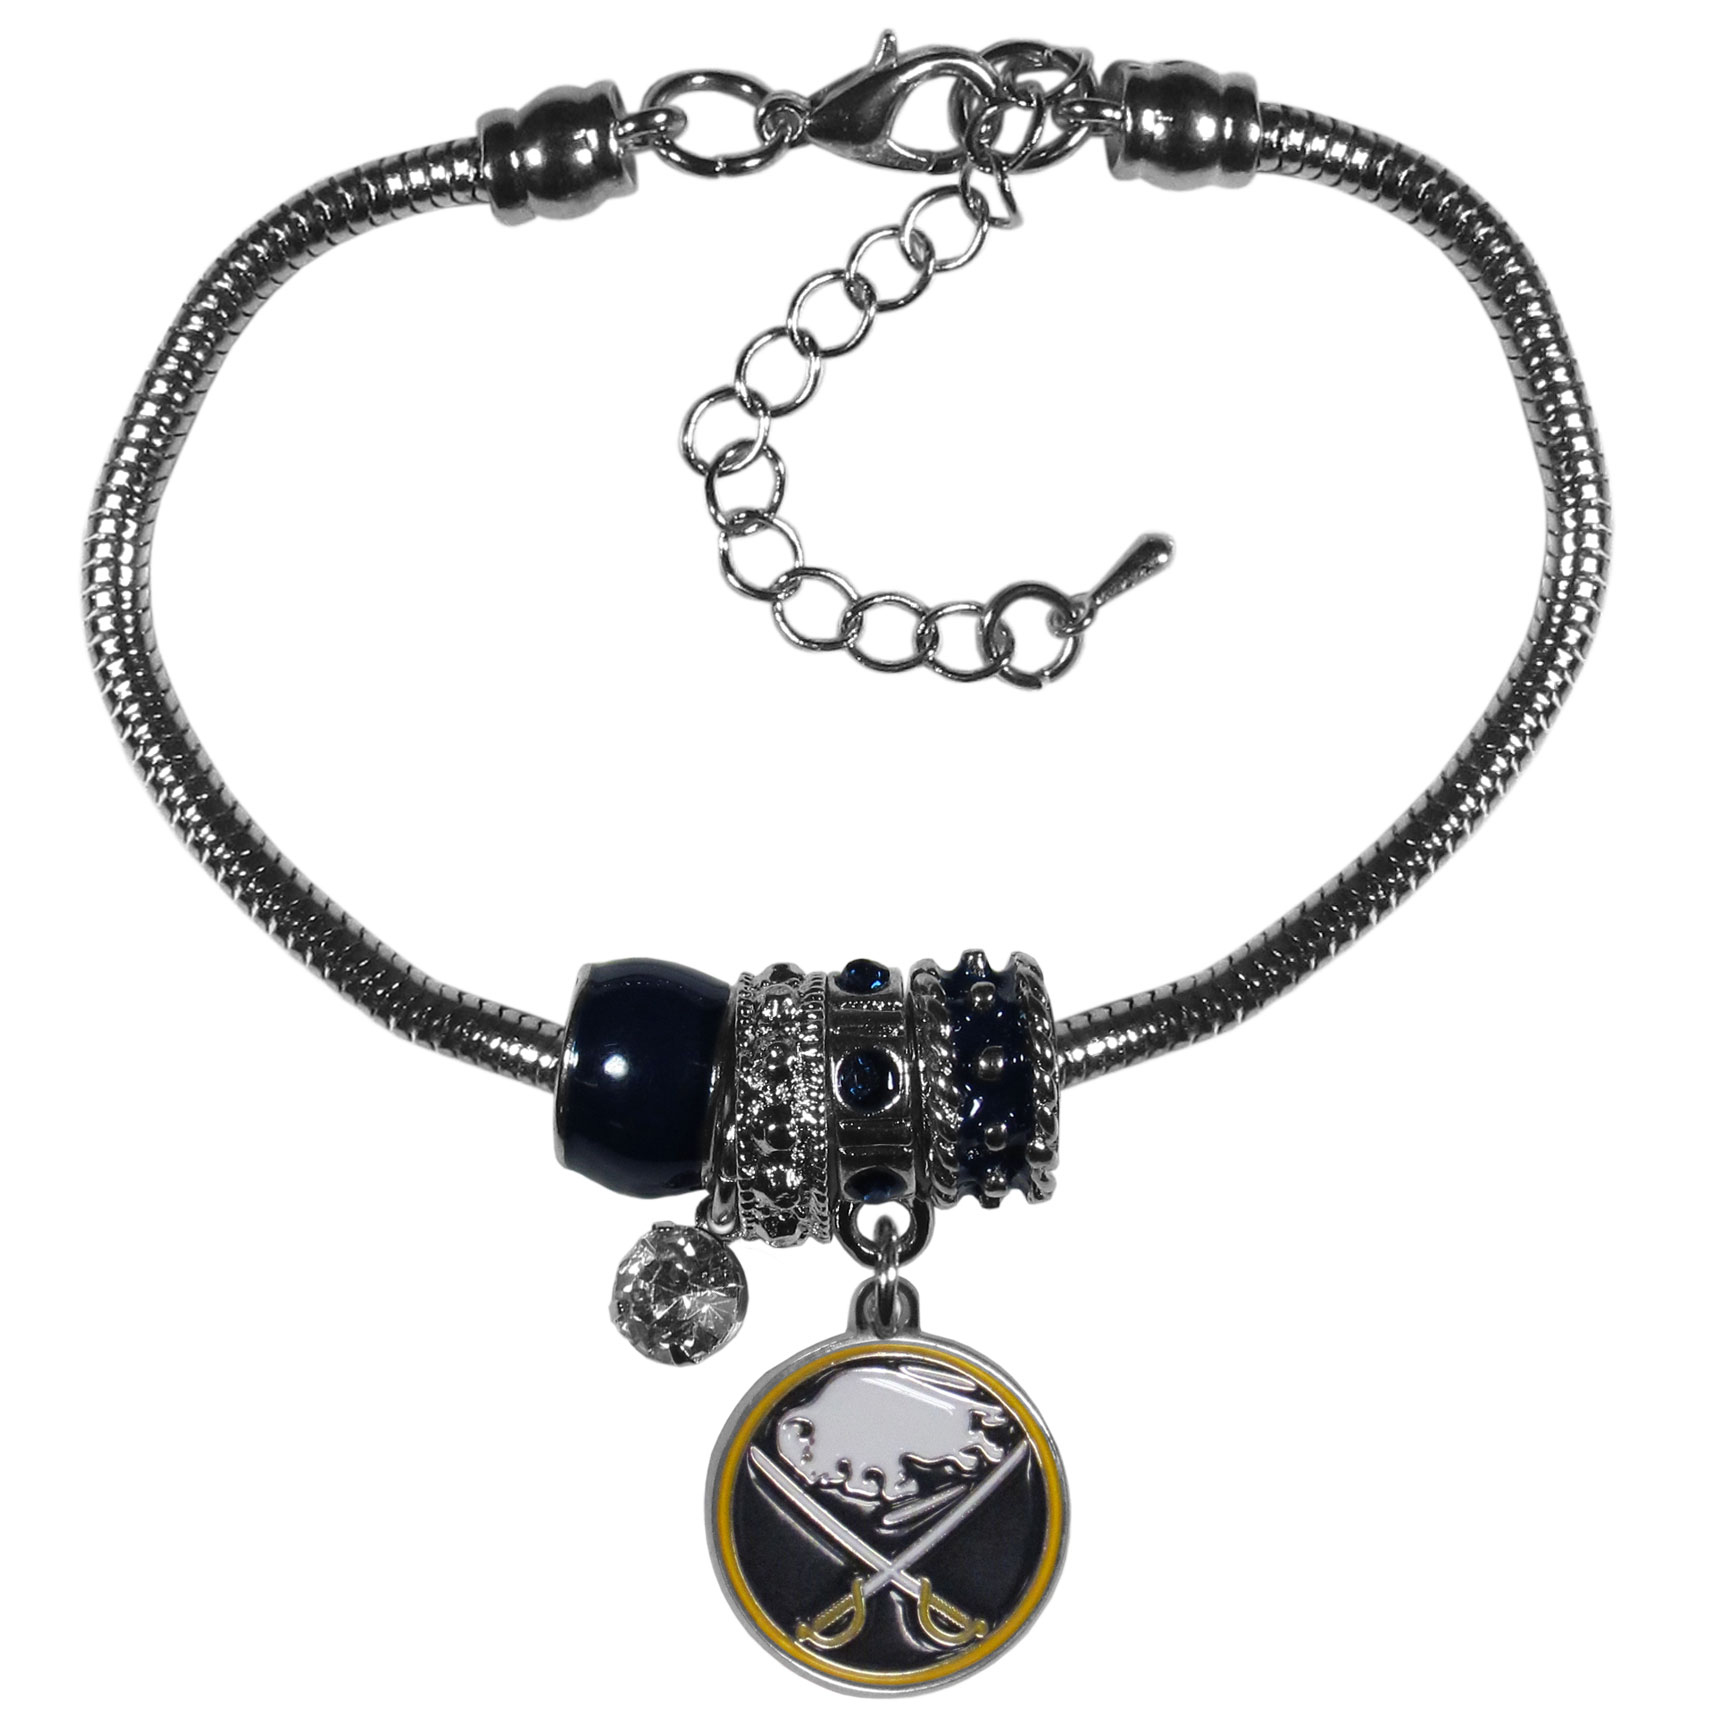 Buffalo Sabres® Euro Bead Bracelet - We have combined the wildly popular Euro style beads with your favorite team to create our  Buffalo Sabres® bead bracelet. The 7.5 inch snake chain with 2 inch extender features 4 Euro beads with enameled team colors and rhinestone accents with a high polish, nickel free charm and rhinestone charm. Perfect way to show off your team pride.